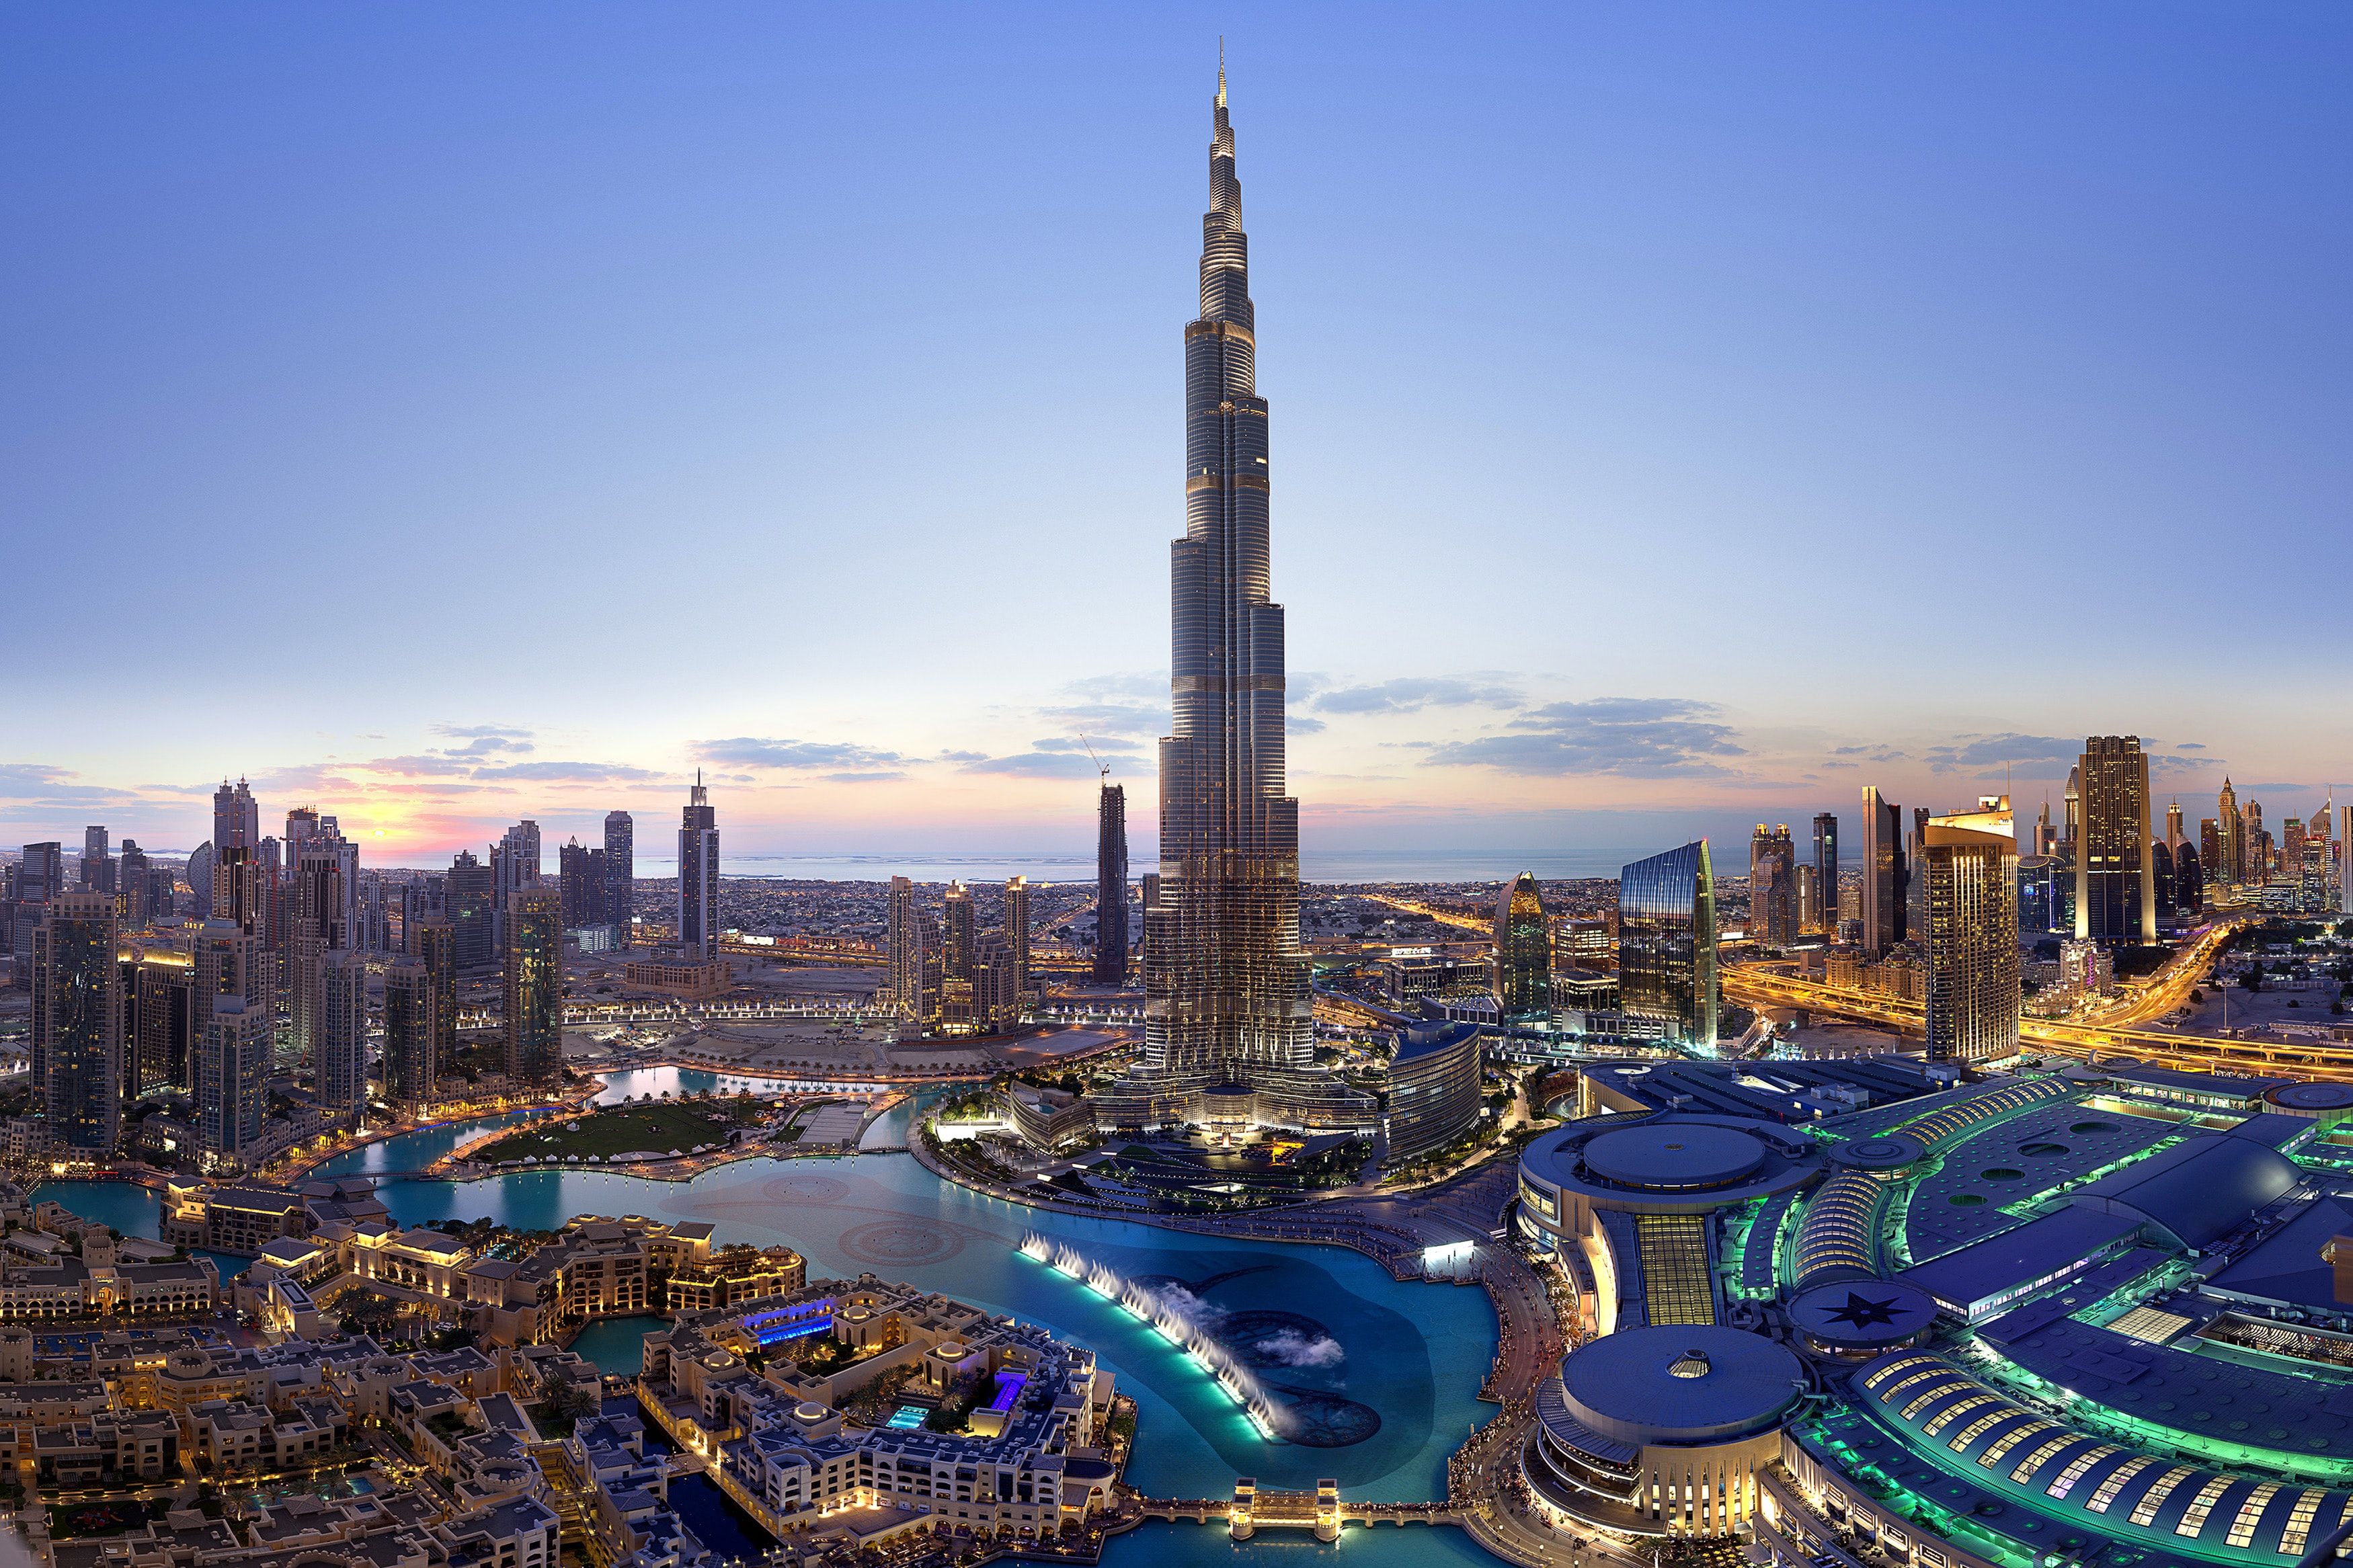 Burj Khalifa 4K Wallpaper, Dubai, Cityscape, Skyscrapers, Dusk, Clearsky,  Sunset, Aerial view, World, #2157